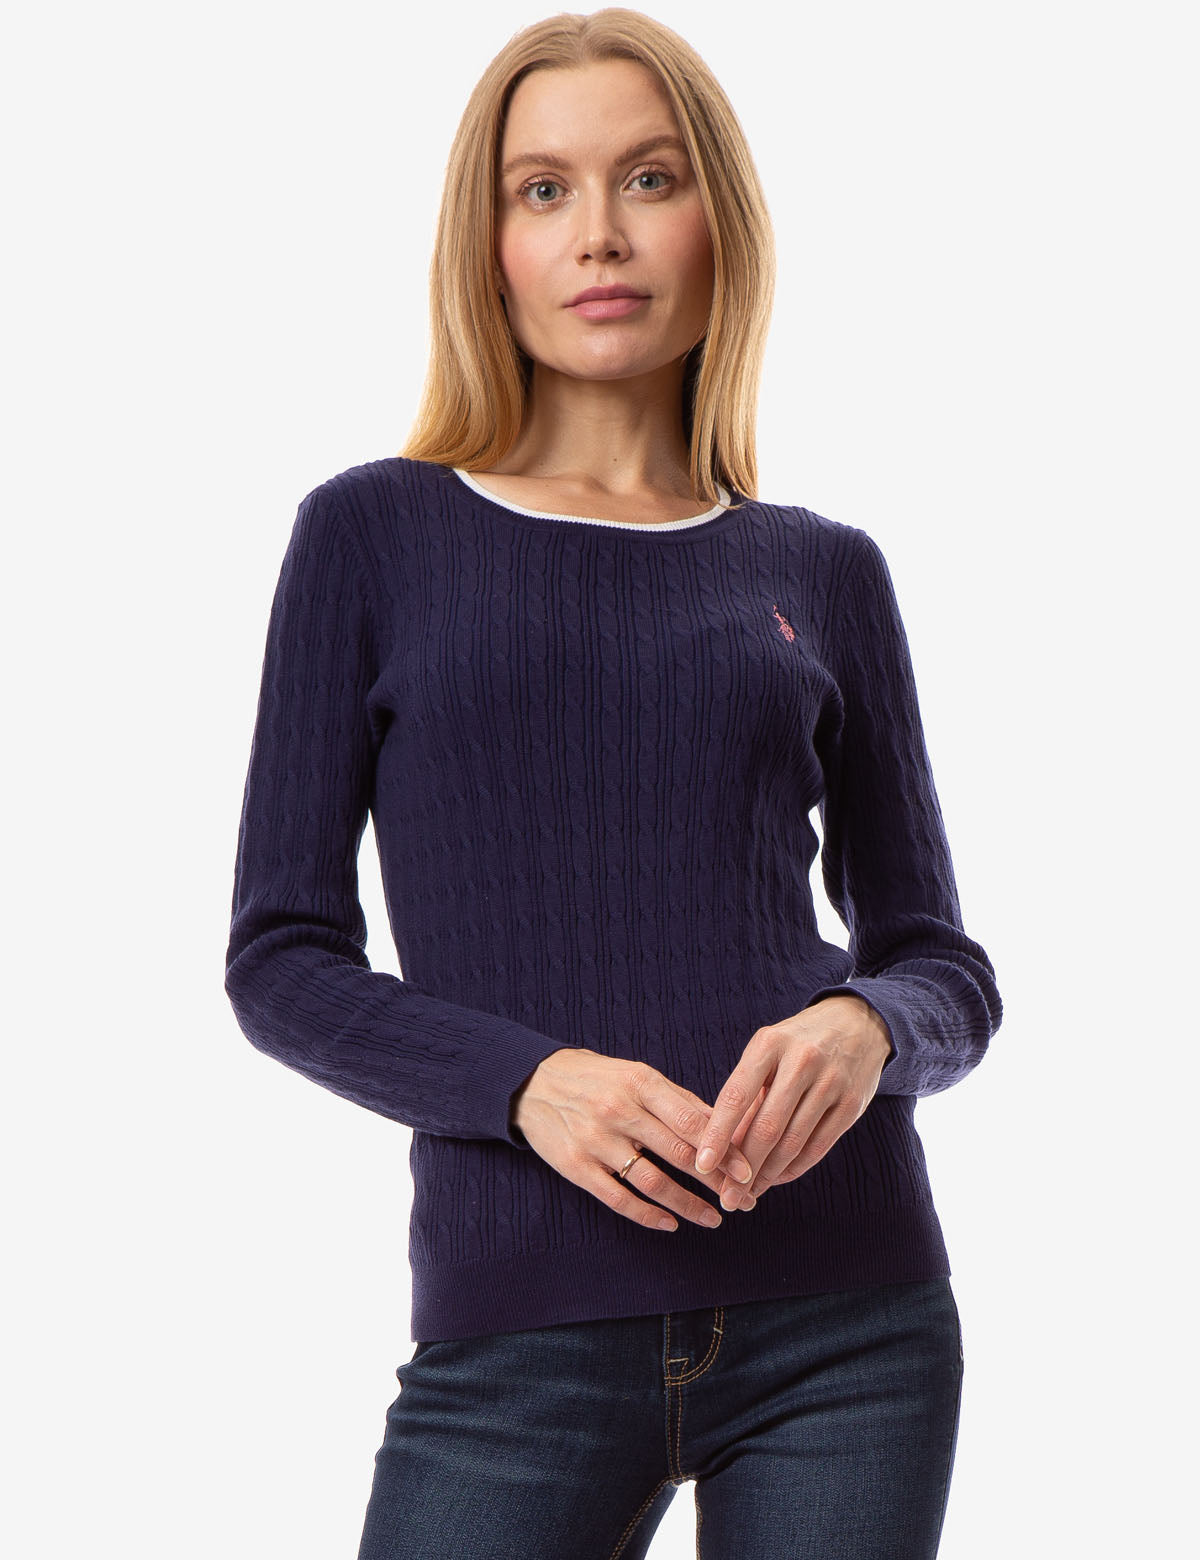 CABLE KNIT CREW NECK SWEATER - U.S. Polo Assn.